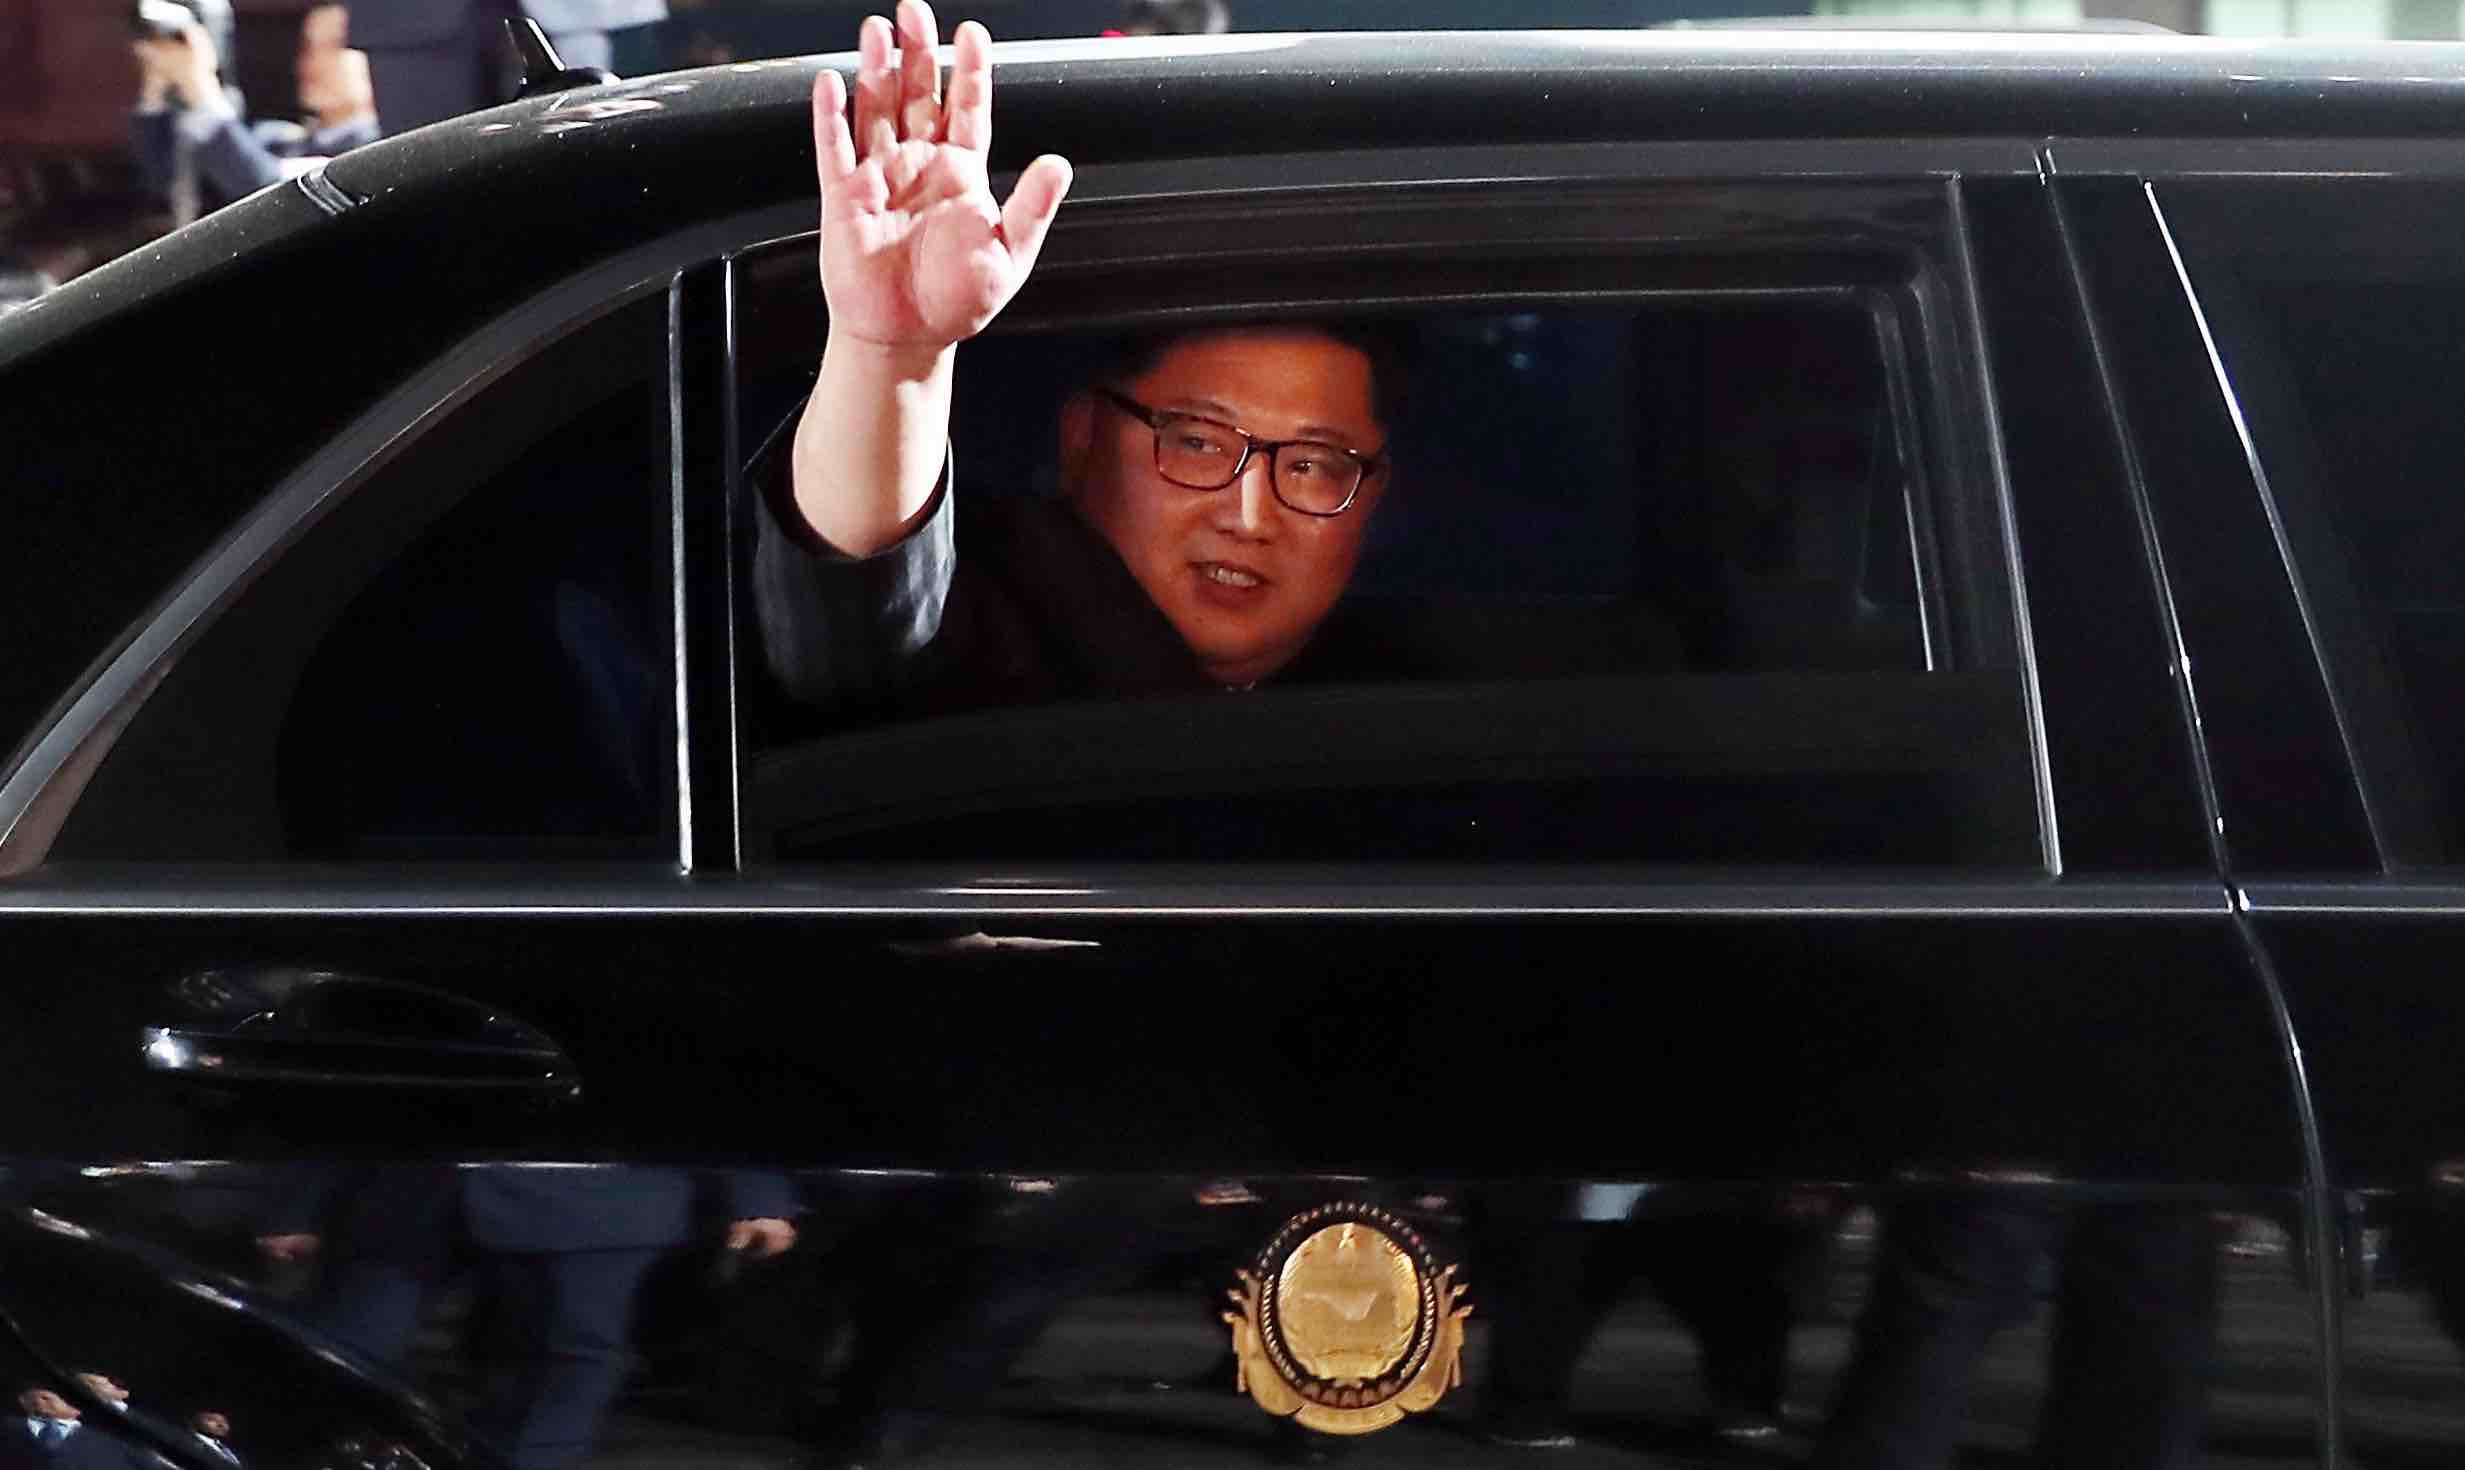 North Korean leader Kim Jong-un waves when departing the inter-Korean summit in Panmunjom last month (Photo: Getty Images)